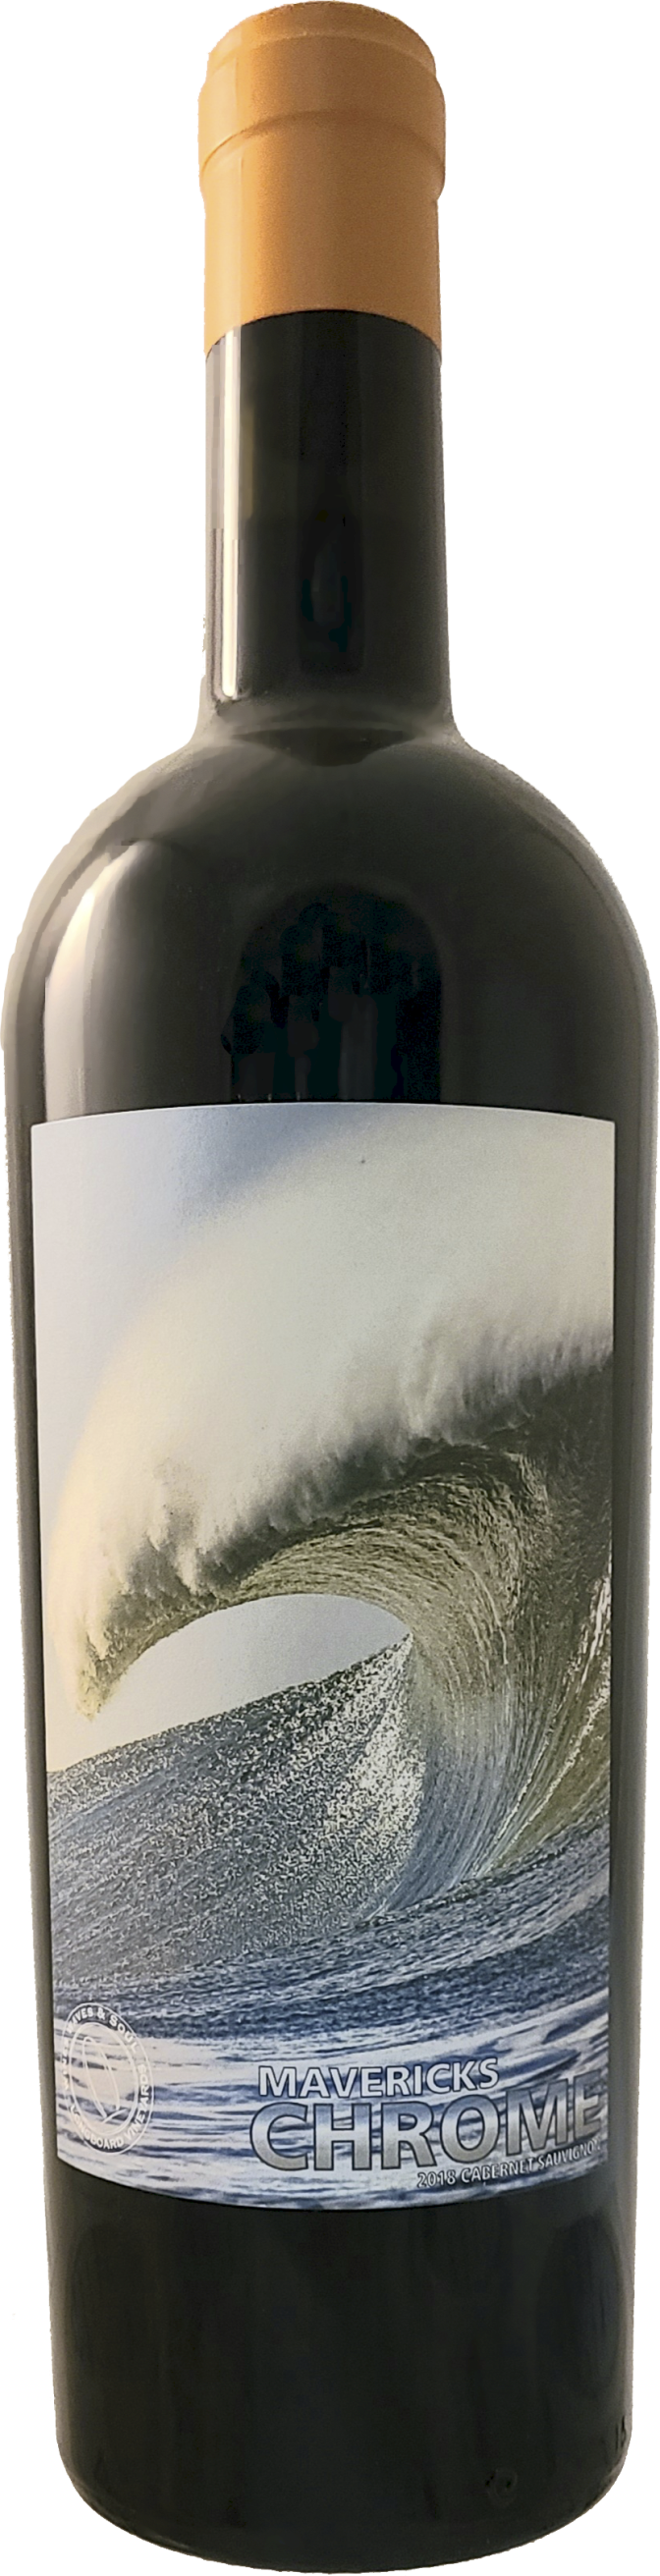 2018 Cabernet Sauvignon - Mavericks Photo